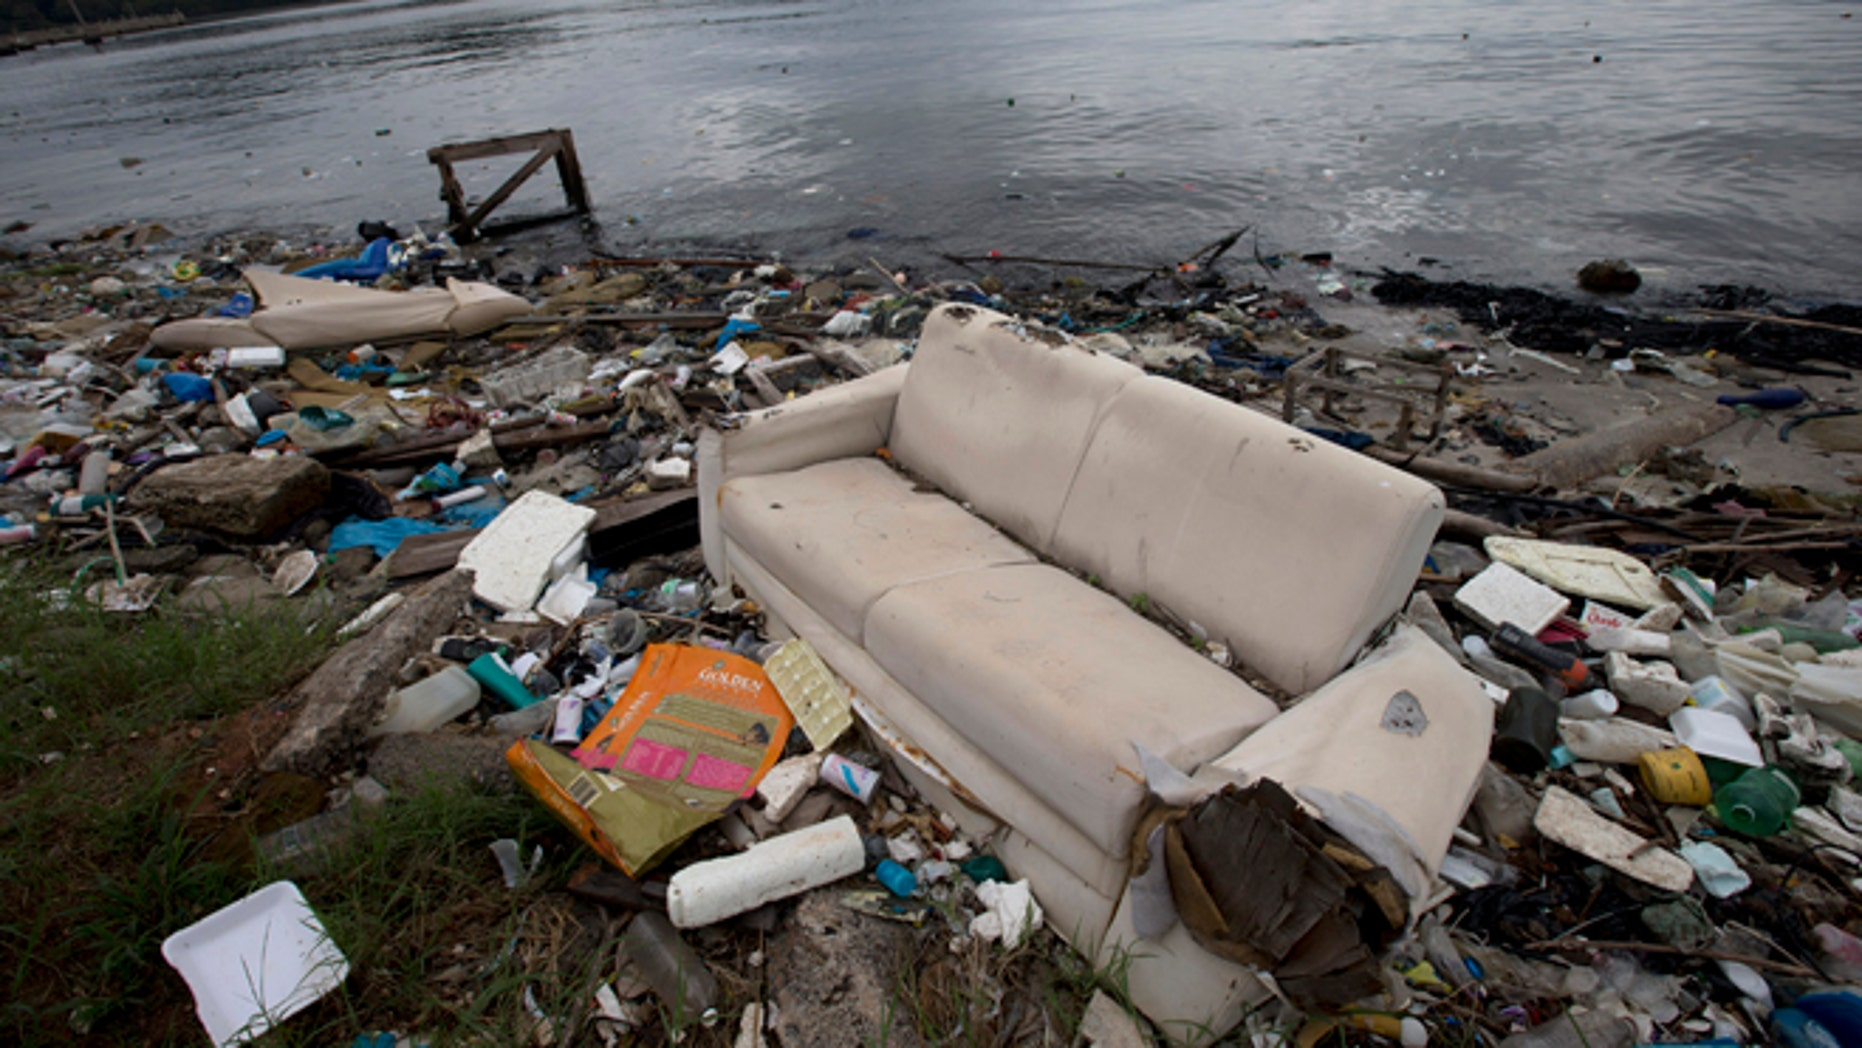 In this June 1, 2015 file photo, a discarded sofa litters the shore of Guanabara Bay in Rio de Janeiro, Brazil. As part of its Olympic bid, Brazil promised to build eight treatment facilities to filter out much of the sewage and prevent tons of household trash from flowing into the Guanabara Bay. Only one has been built. Tons of household trash line the coastline and form islands of refuse. (AP Photo/Silvia Izquierdo, File)